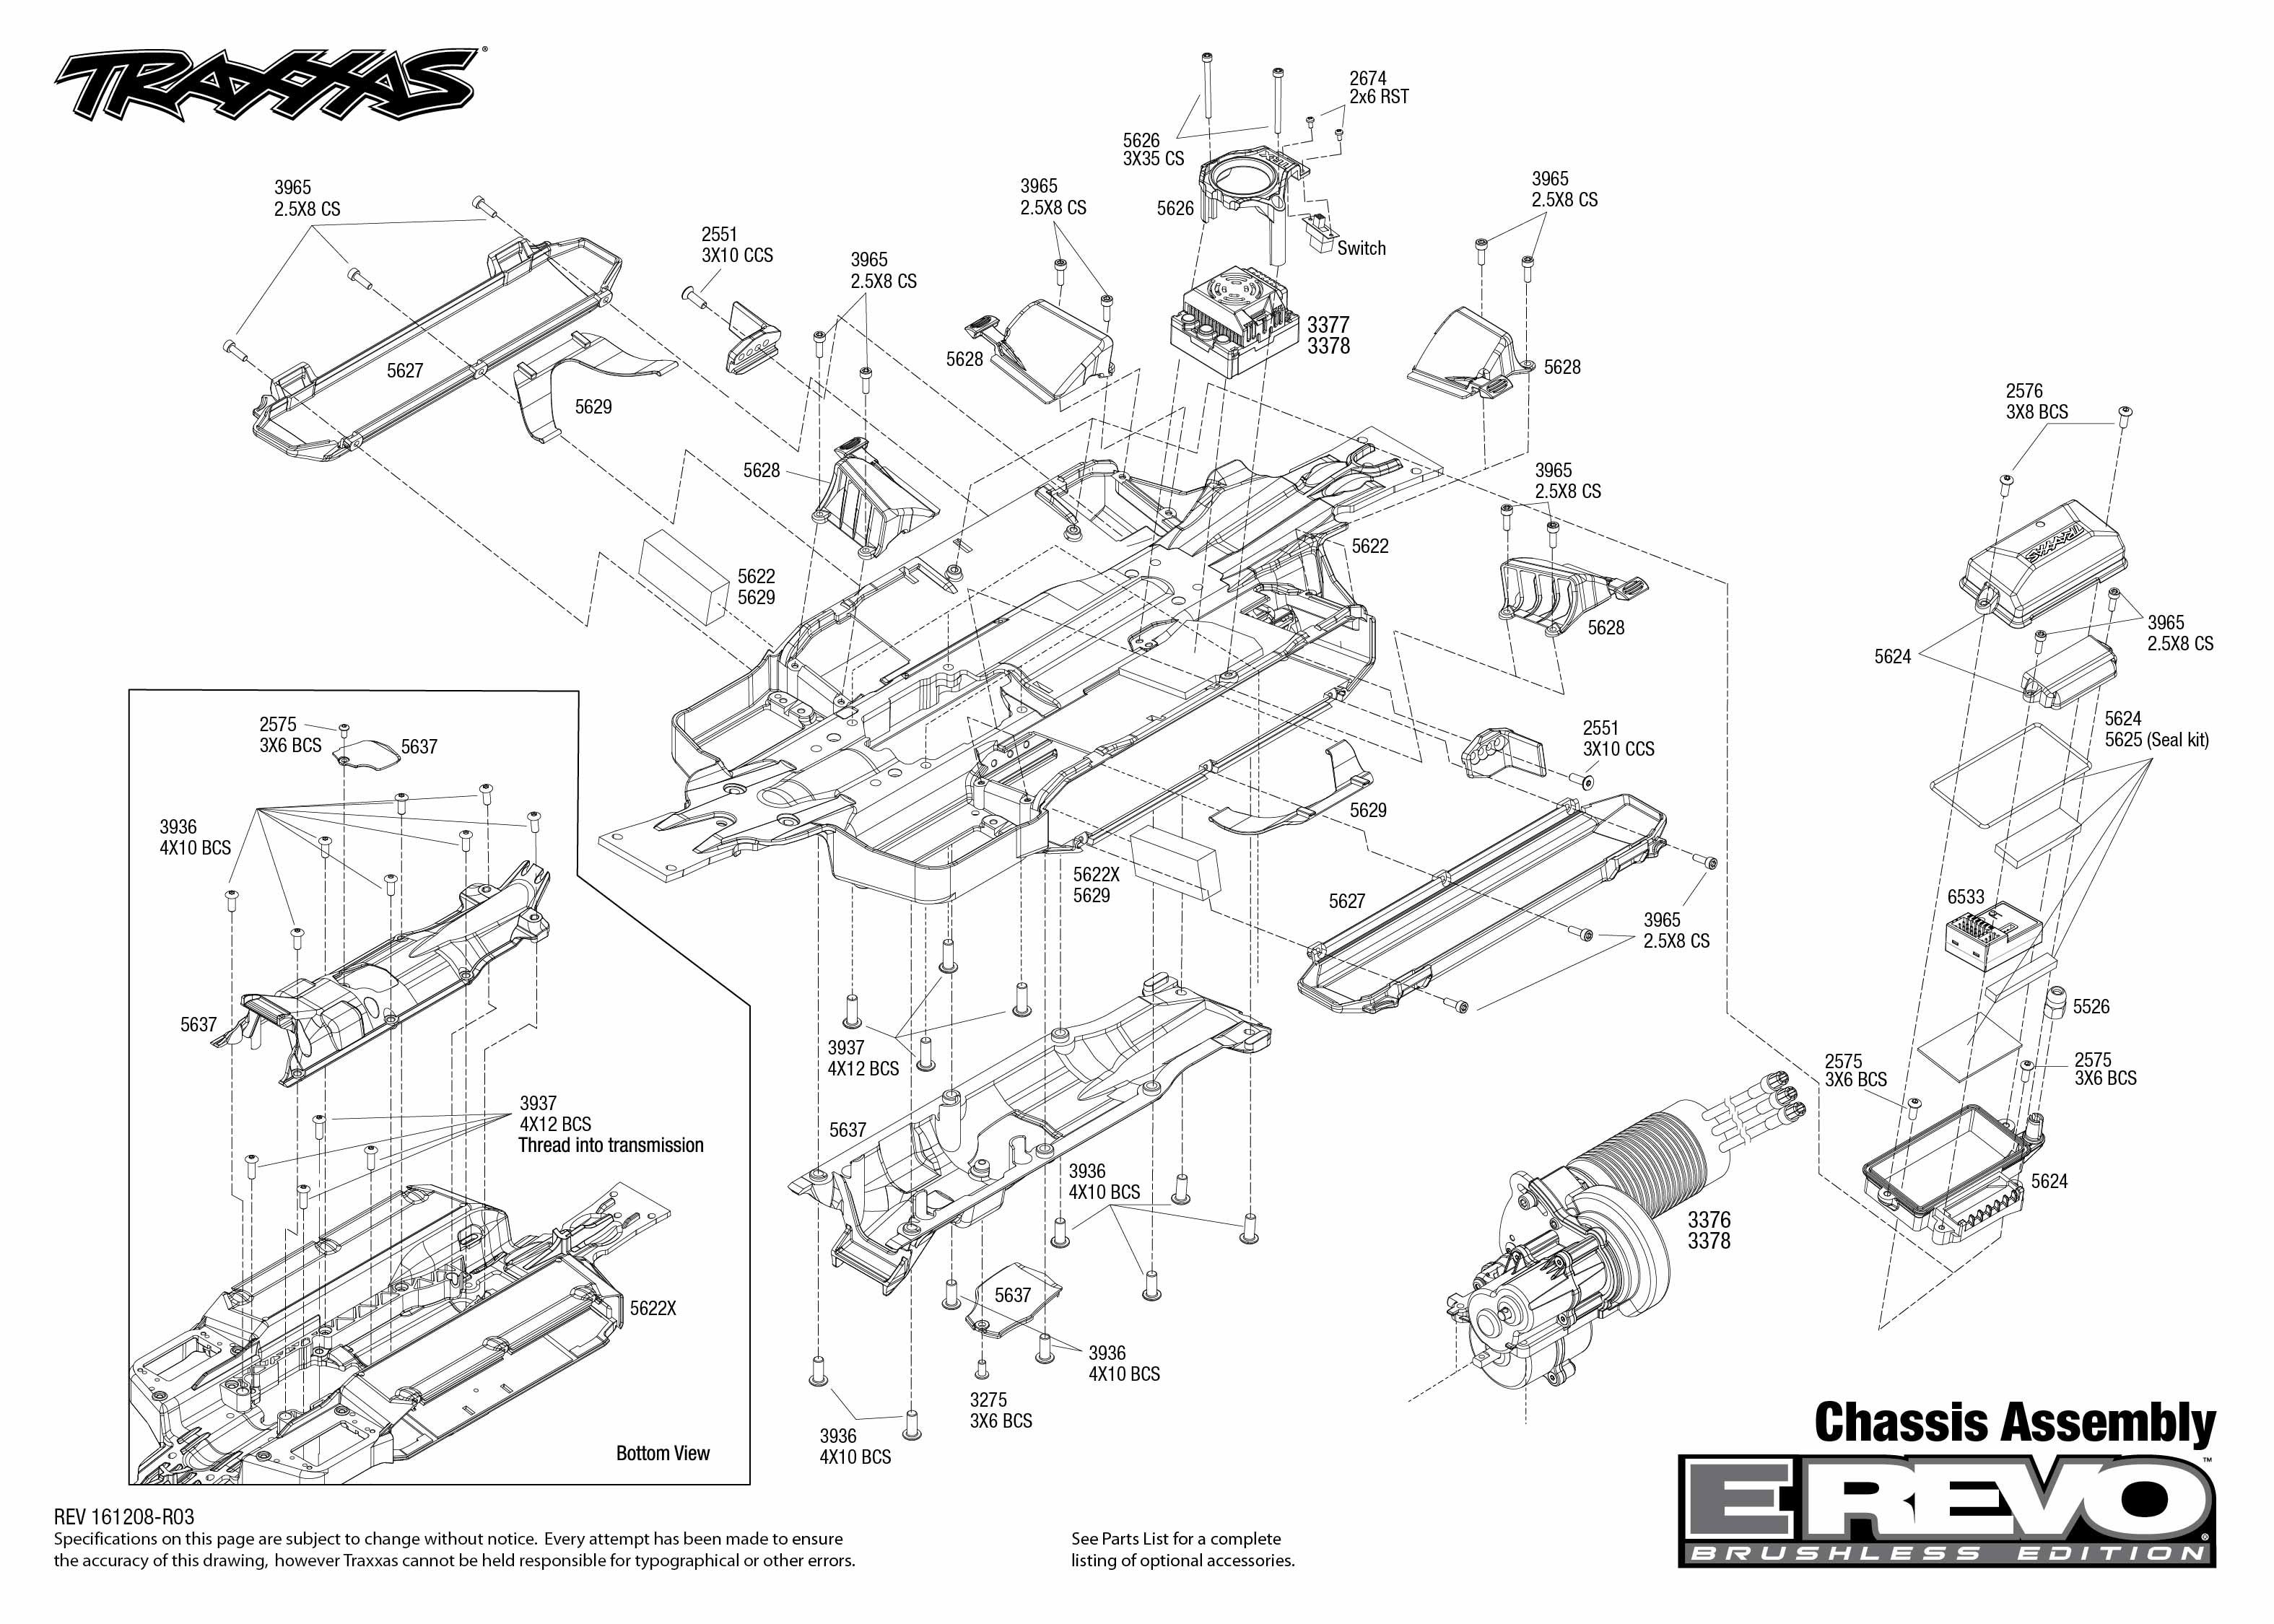 E-Revo Brushless (56086-4) Chassis Assembly Exploded View